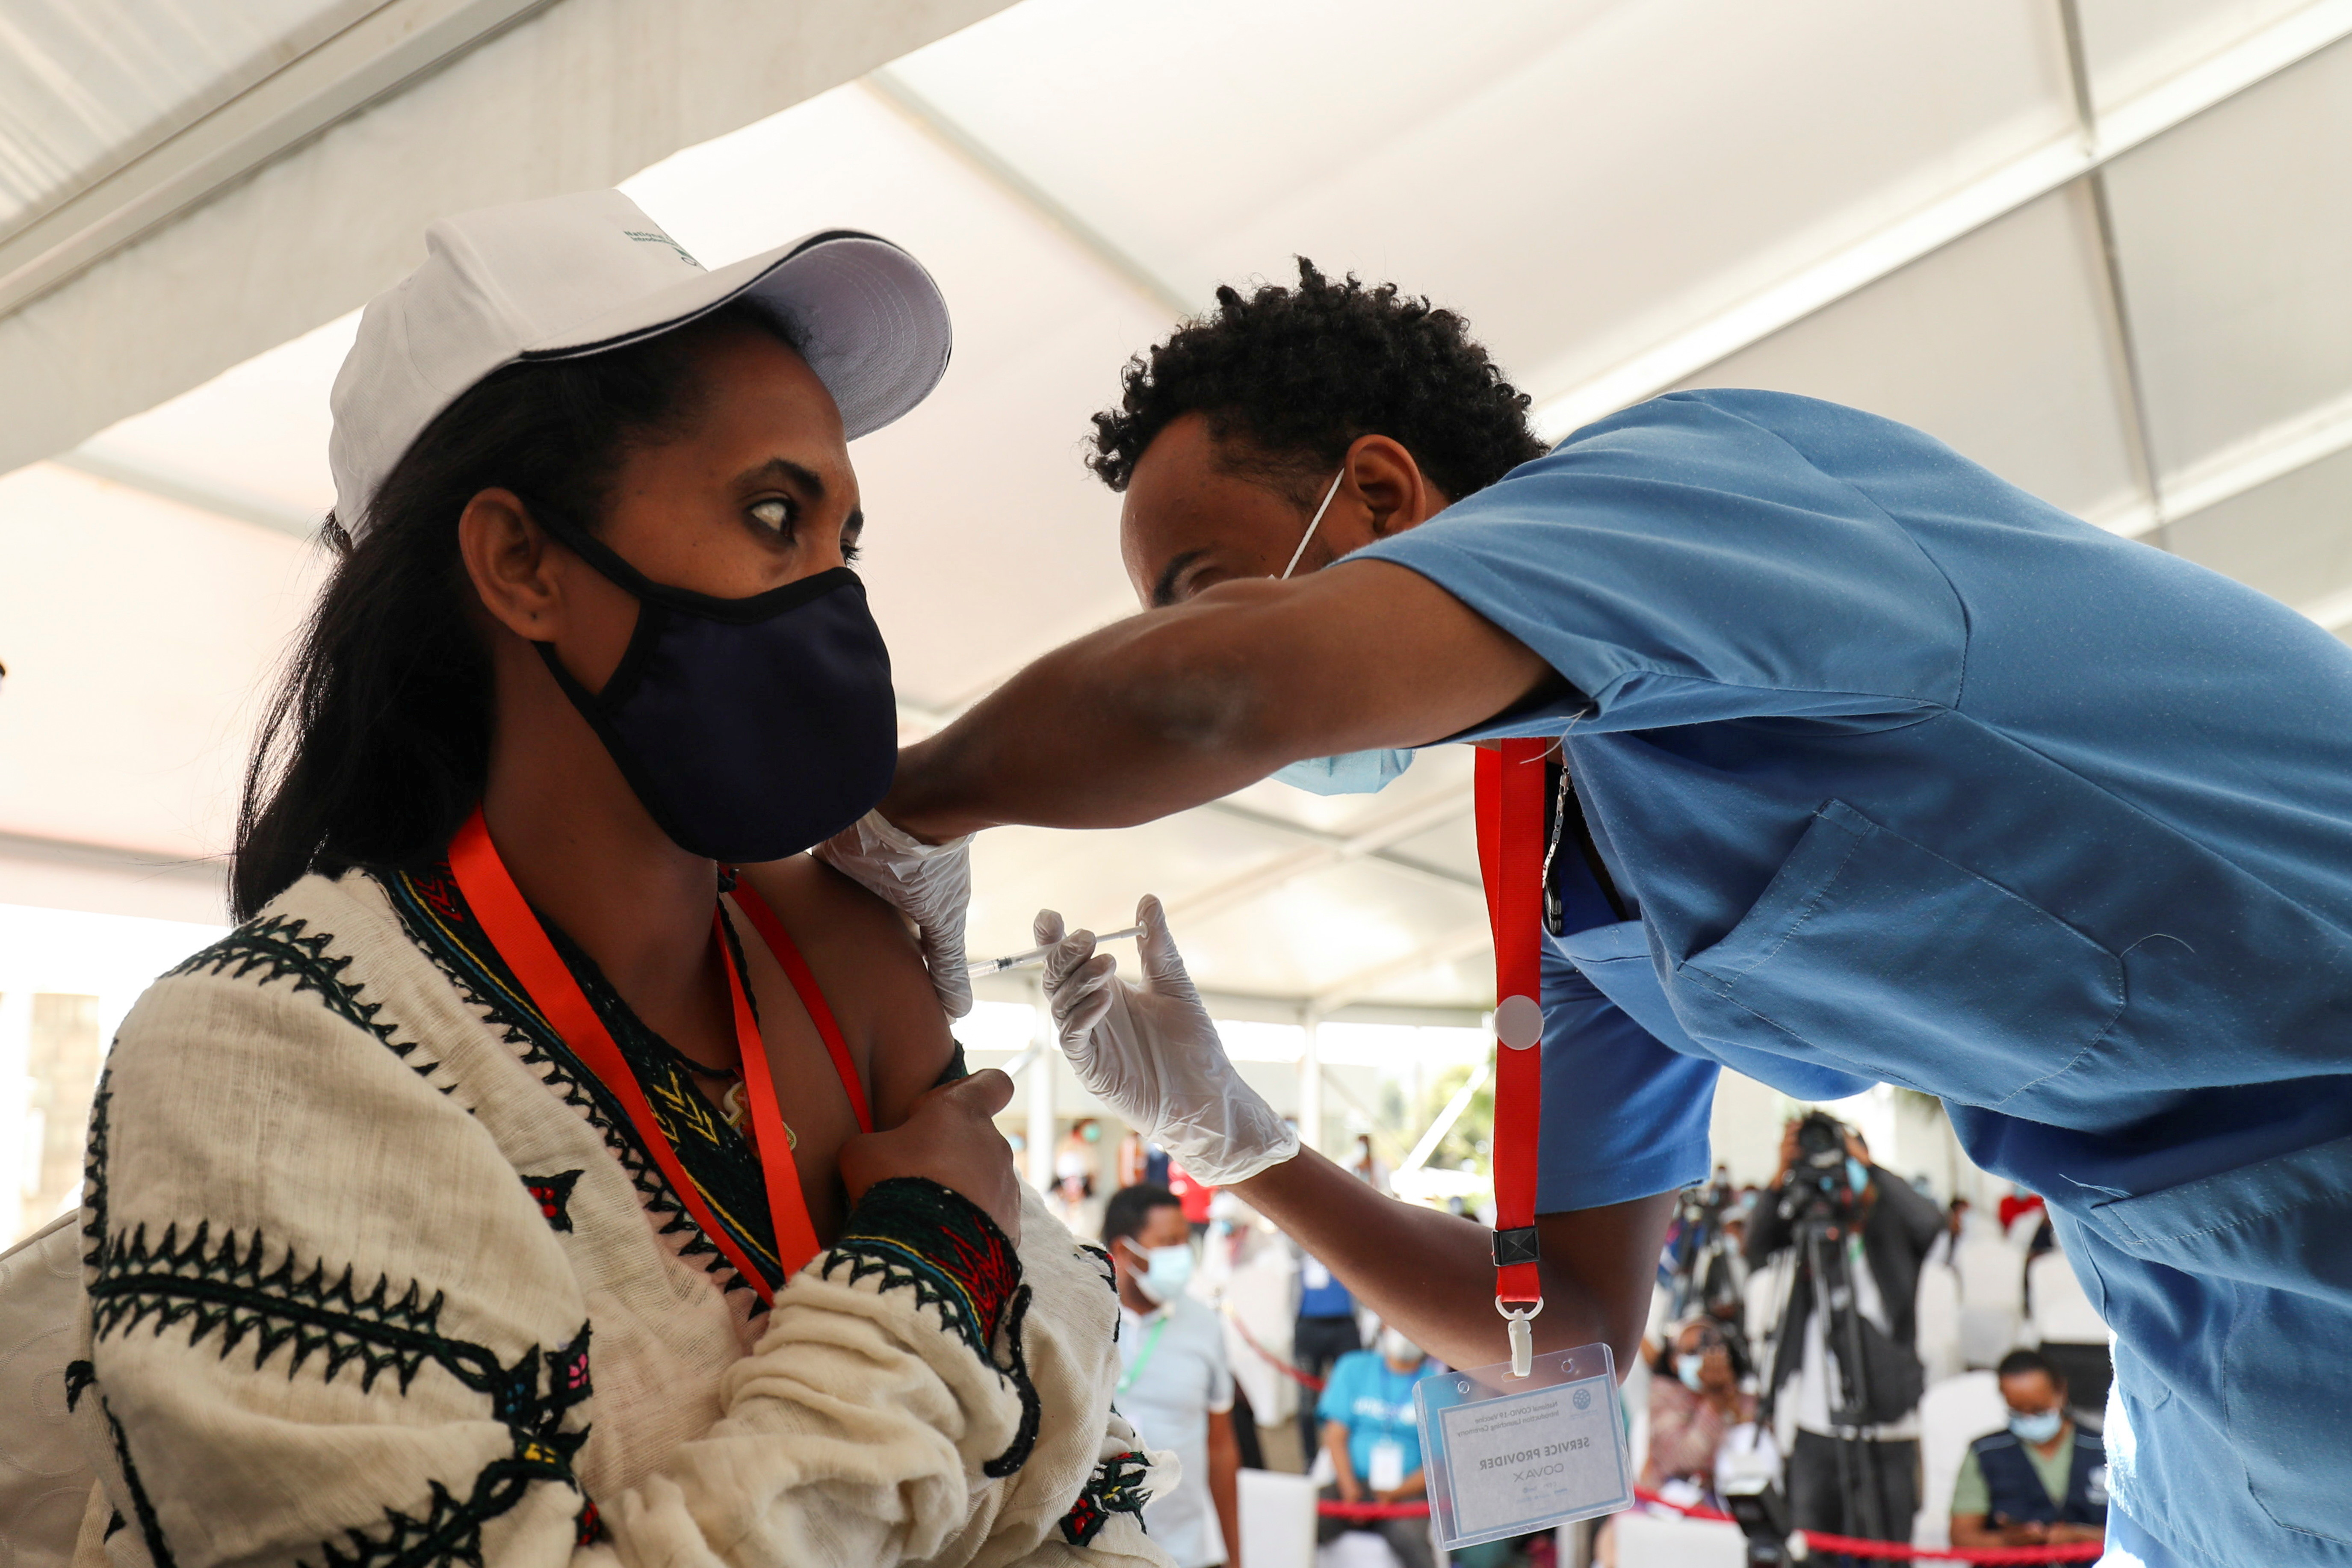 A woman receives the AstraZeneca/Oxford vaccine under the COVAX scheme against the coronavirus disease (COVID-19) at the Eka Kotebe General Hospital in Addis Ababa, Ethiopia March 13, 2021. REUTERS/Tiksa Negeri - RC2AAM9QQ26Y